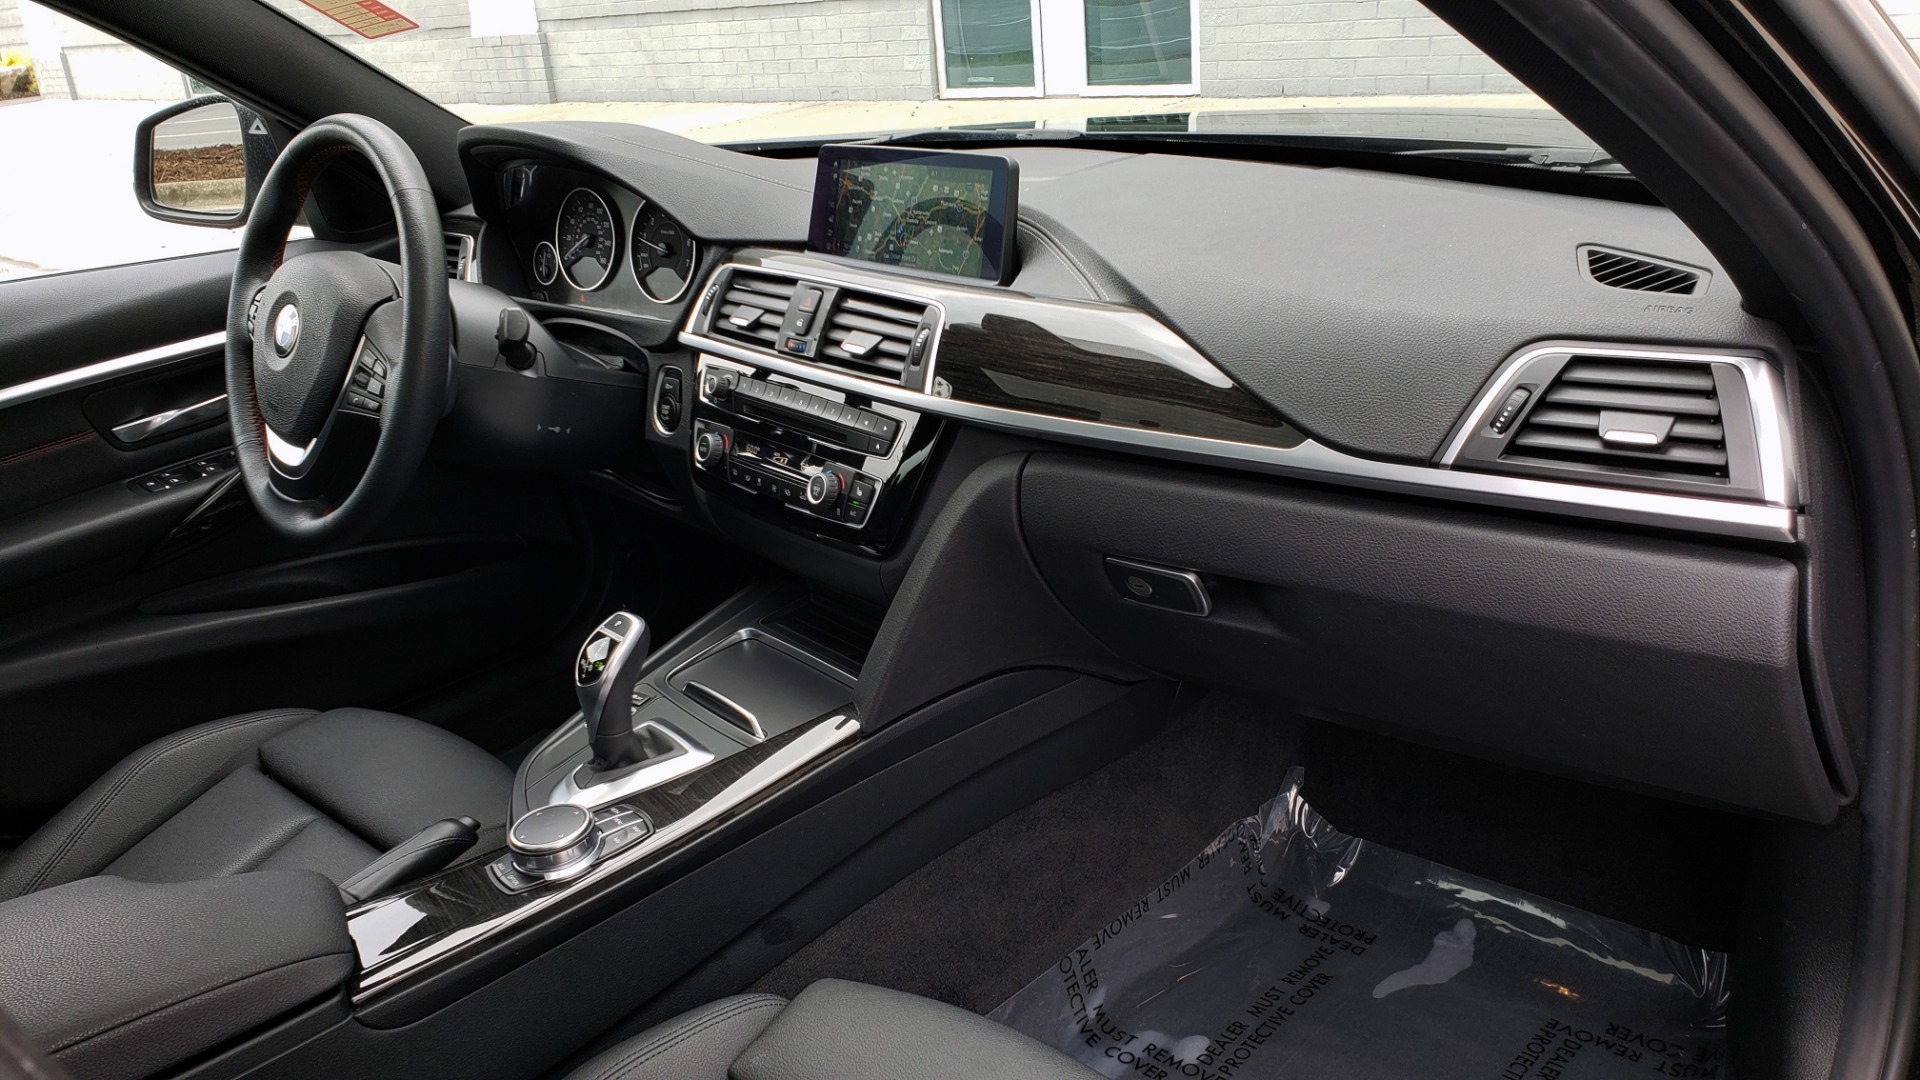 Used 2018 BMW 3 SERIES 330IXDRIVE / CONV PKG / NAV / SUNROOF / HTD STS / REARVIEW for sale $26,552 at Formula Imports in Charlotte NC 28227 68